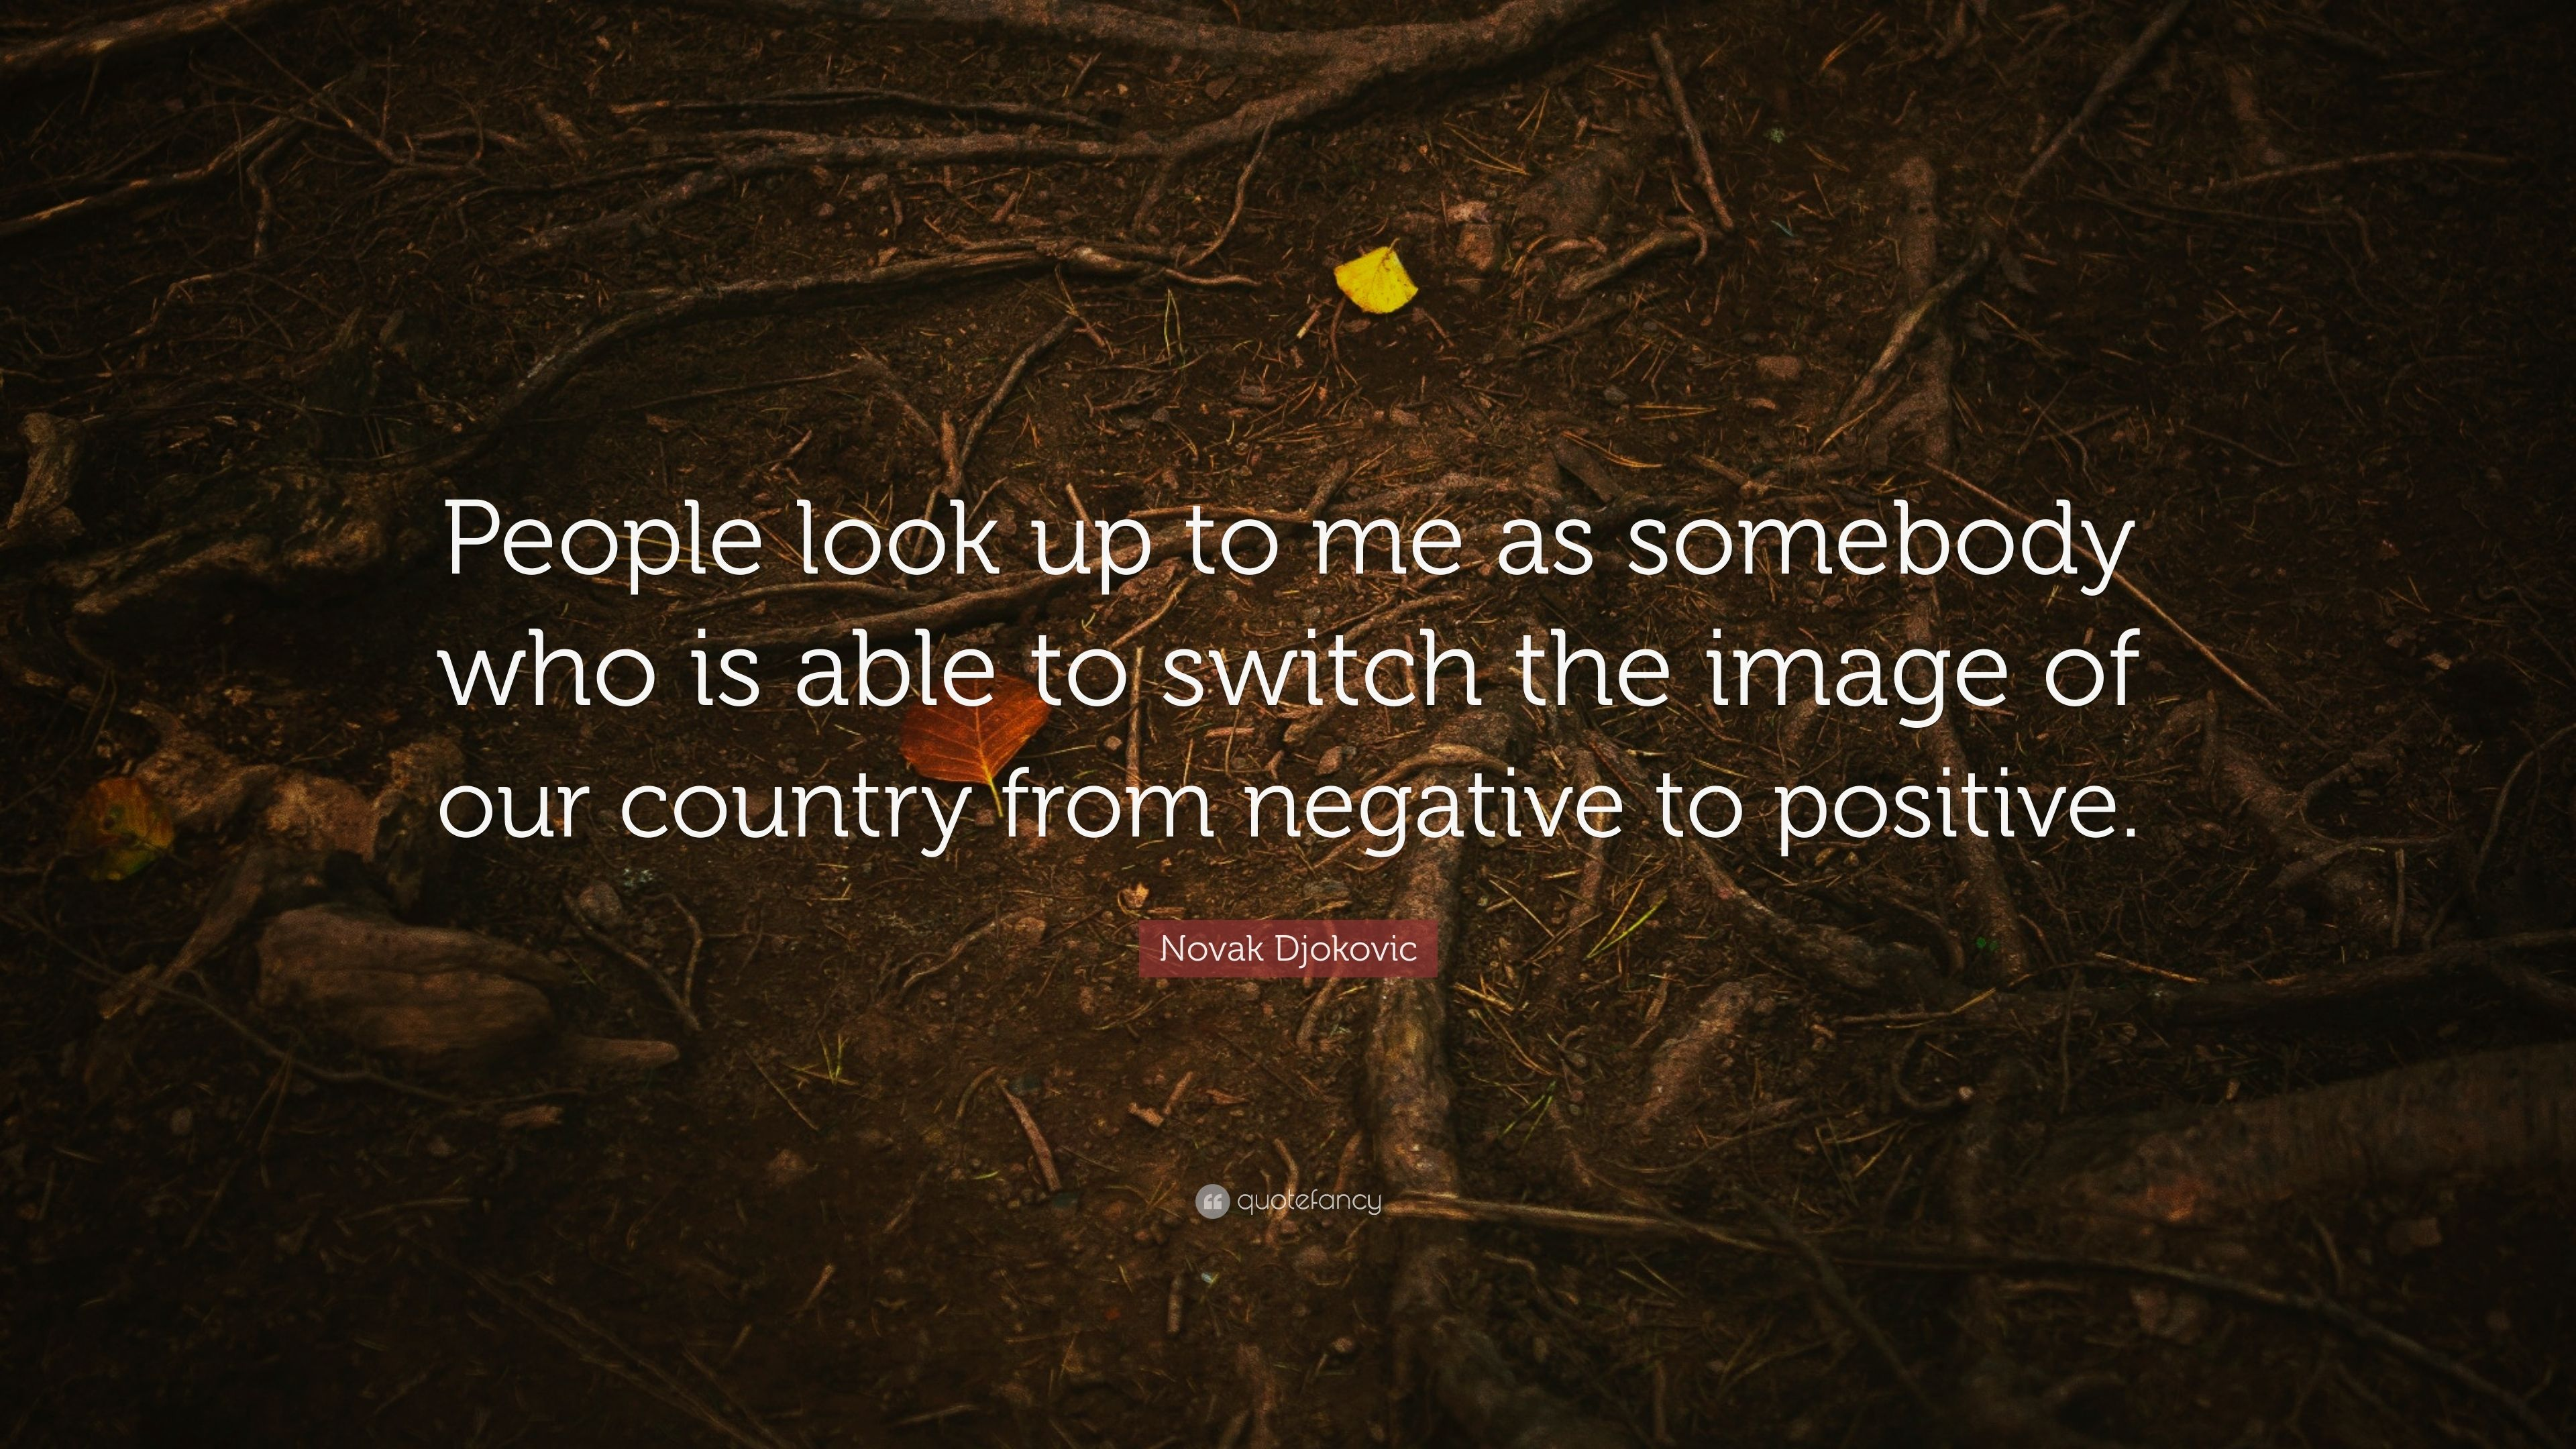 Novak Djokovic Quote People Look Up To Me As Somebody Who Is Able To Switch The Image Of Our Country From Negative To Positive 7 Wallpapers Quotefancy